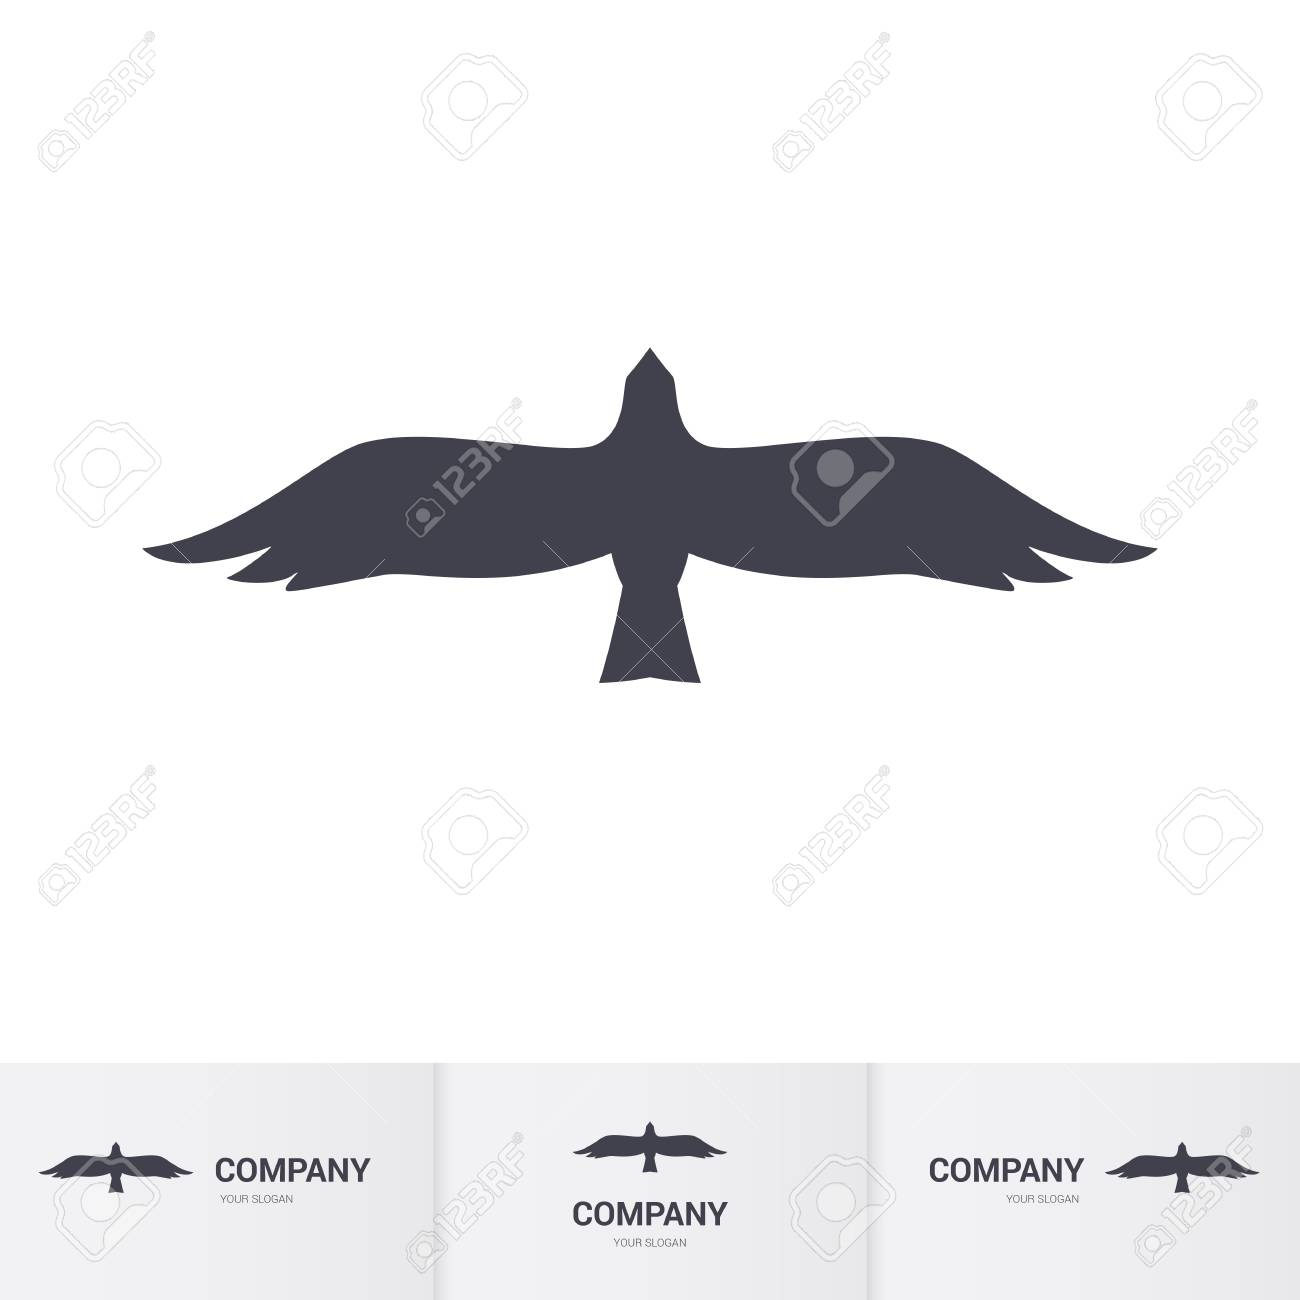 Simple Dark Bird Of Prey For Mascot Logo Template On White Royalty Free Cliparts Vectors And Stock Illustration Image 80787947